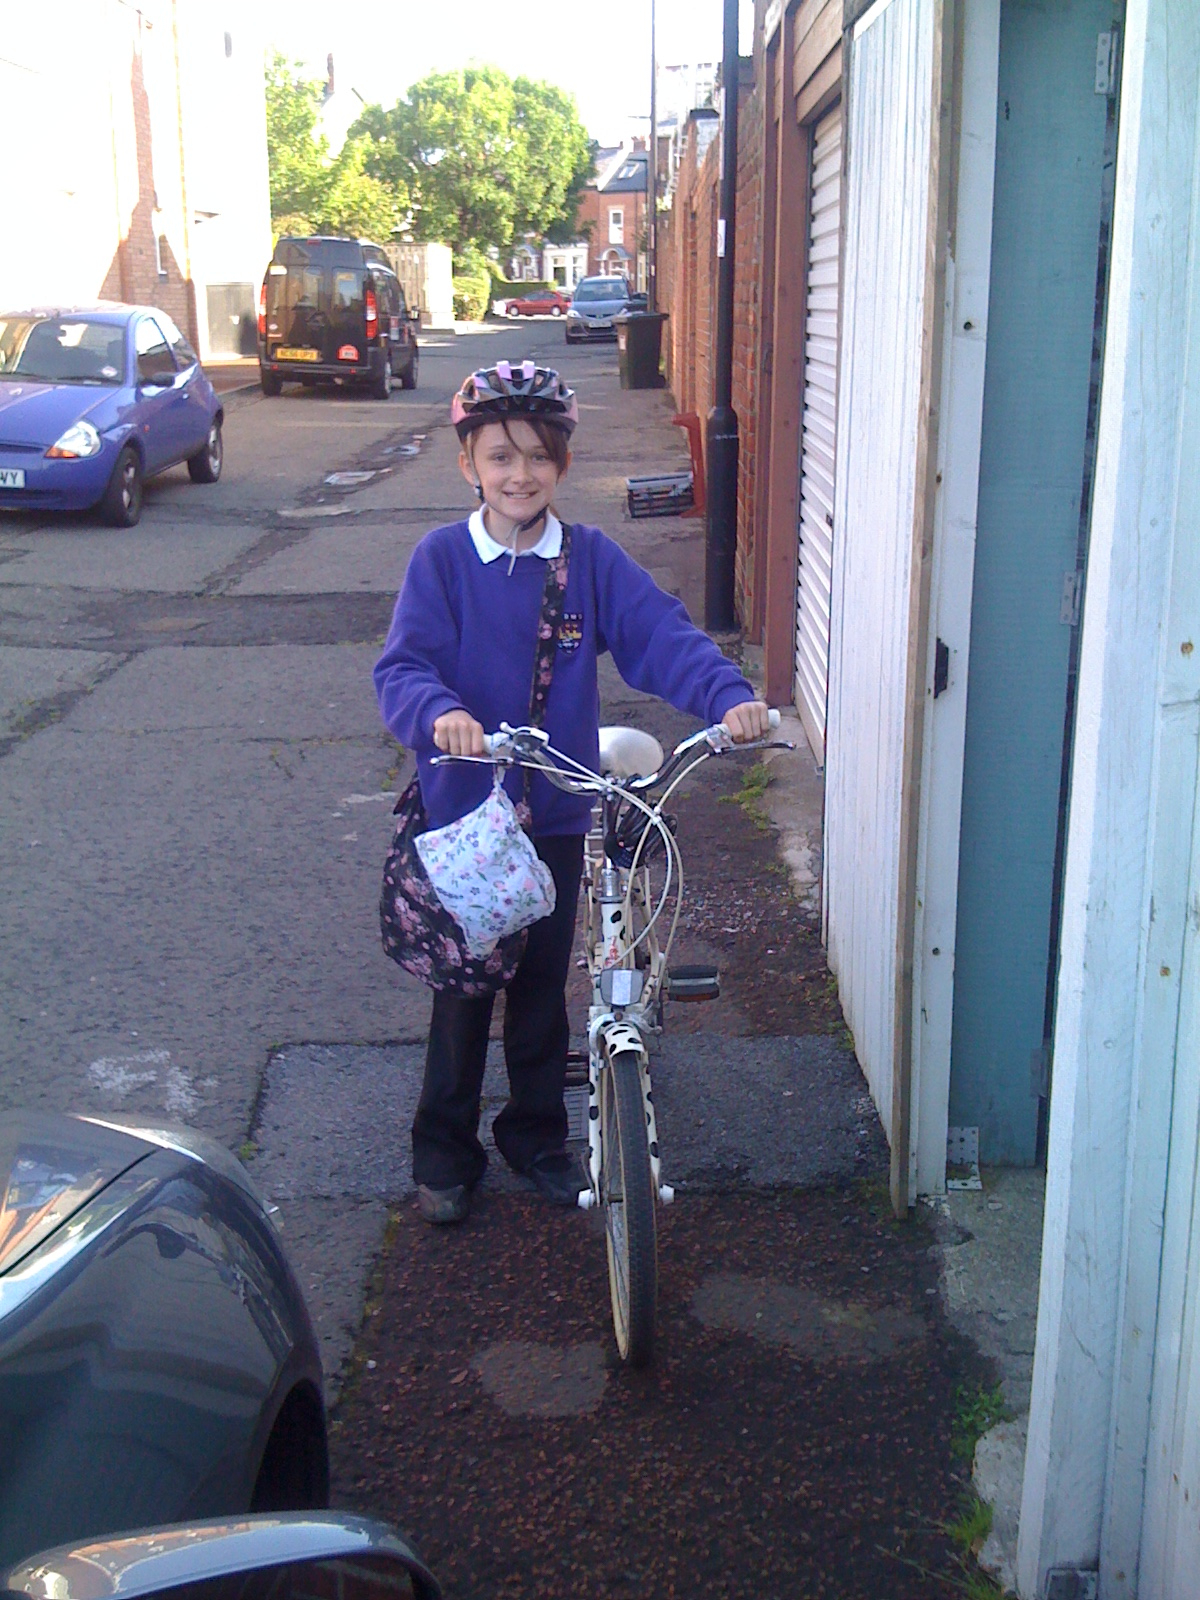 My Cycle Chic Daughter